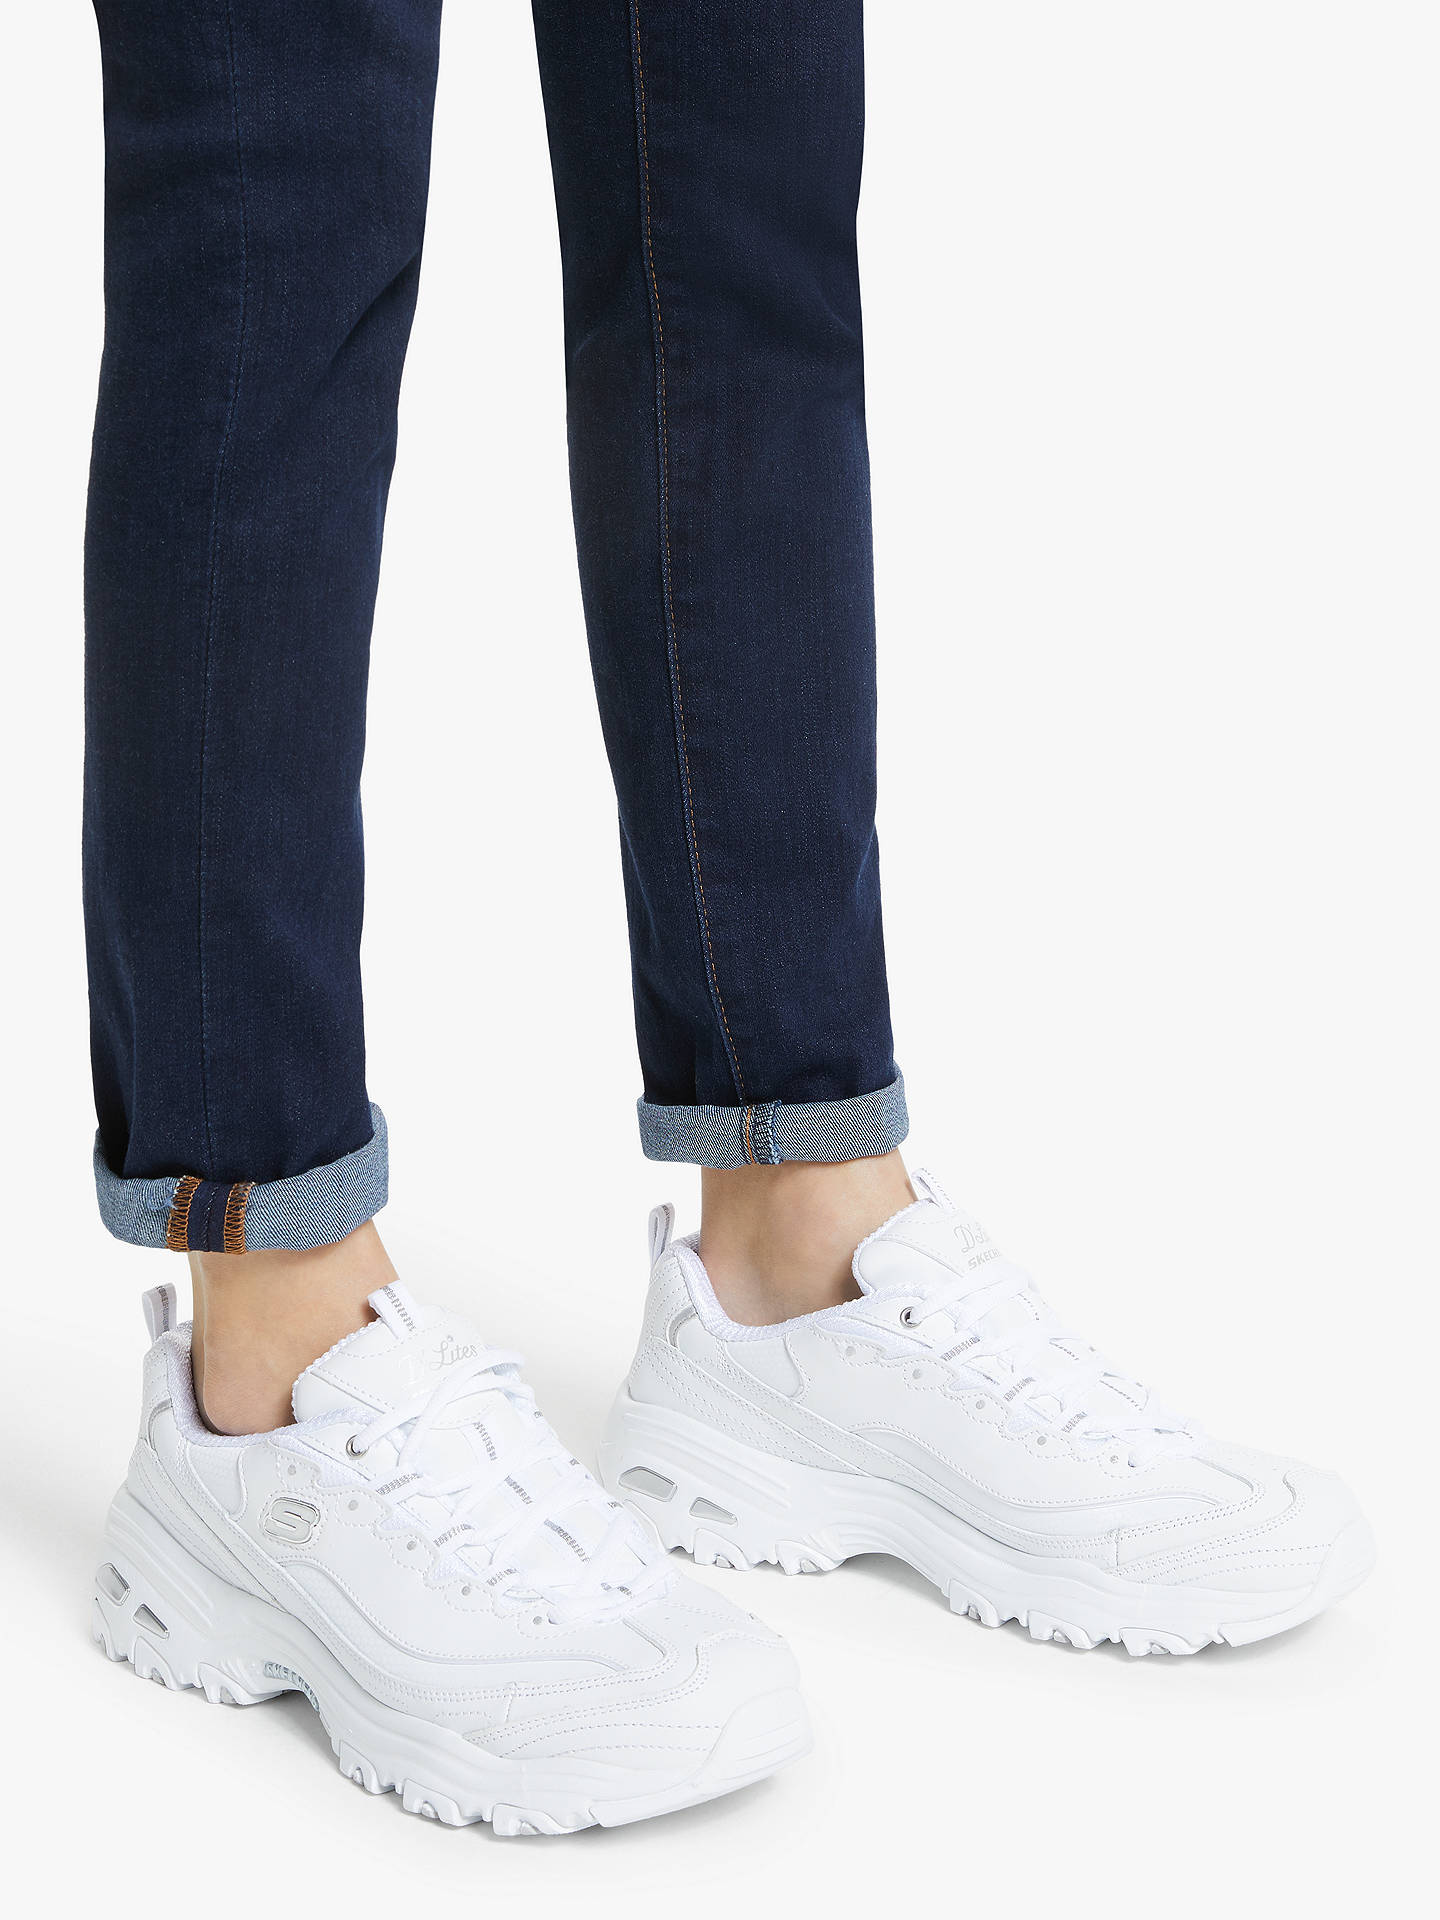 Buy Skechers D'Lites Trainers, White, 8 Online at johnlewis.com